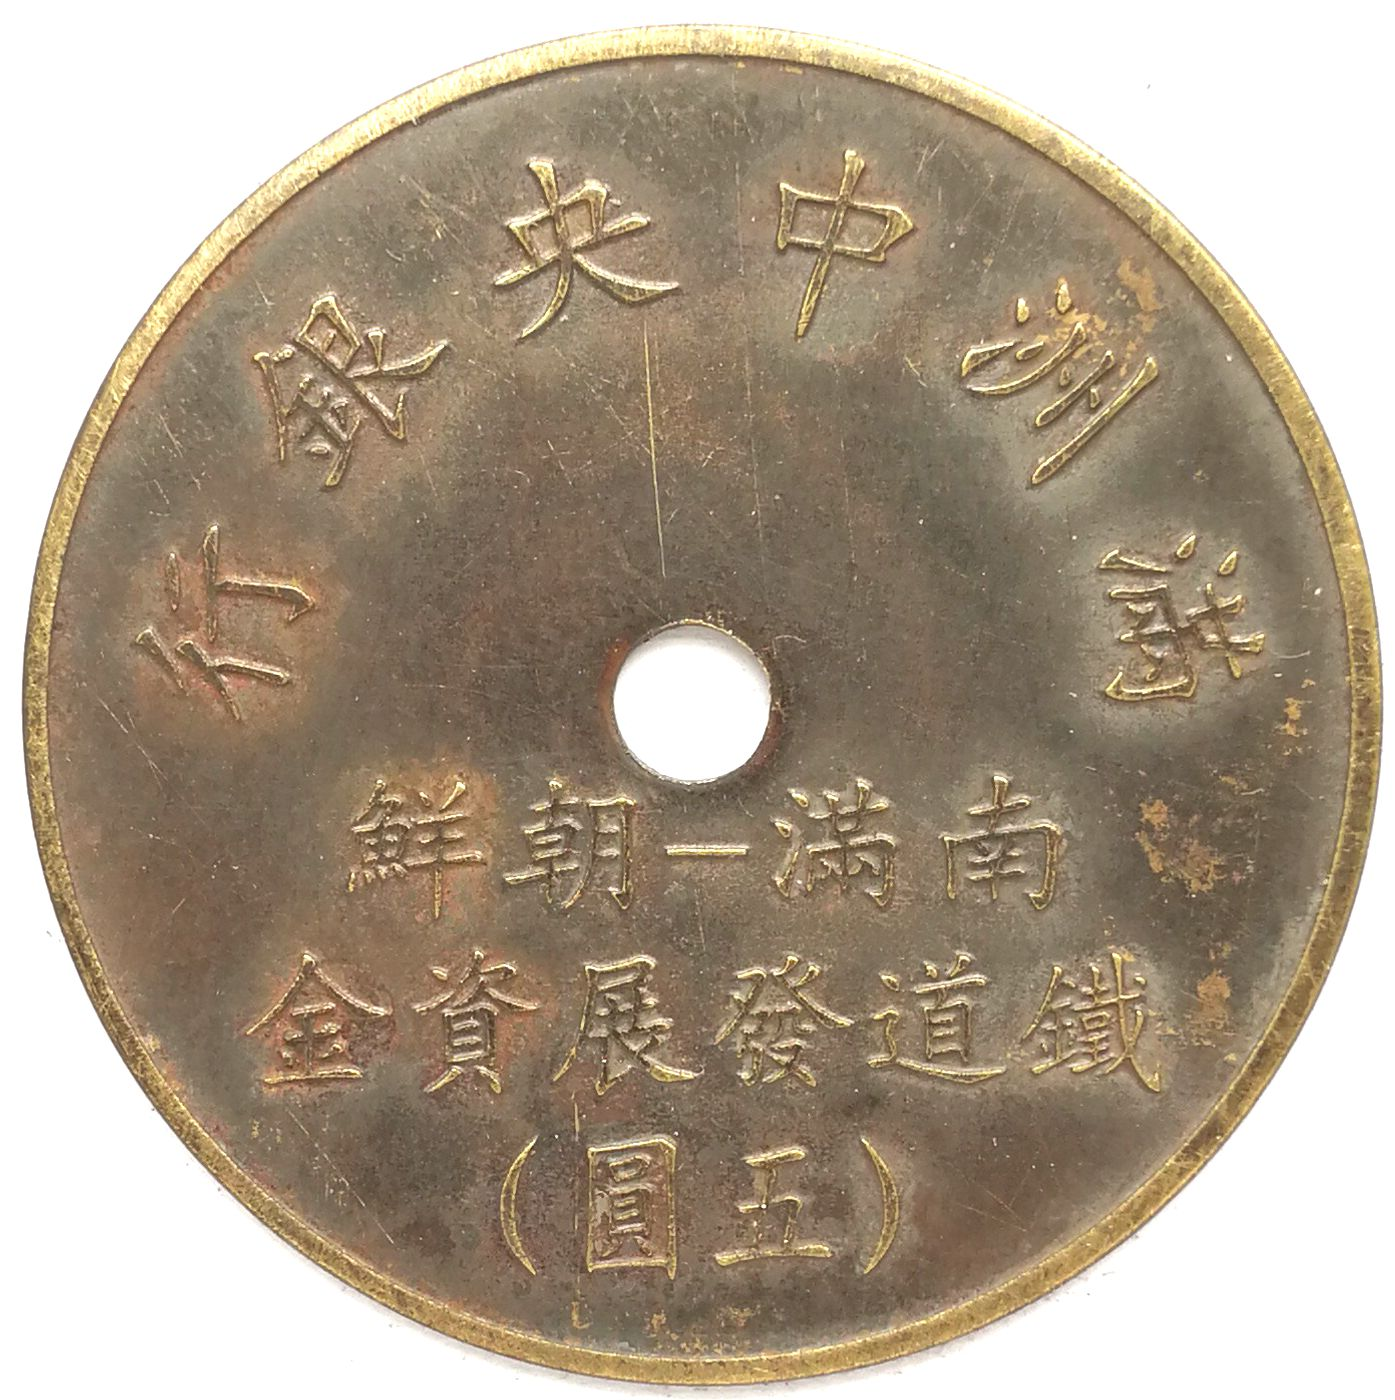 BT494, Korea-Manchukuo Railway Fund, Token Bond, 5 Yen, 1944